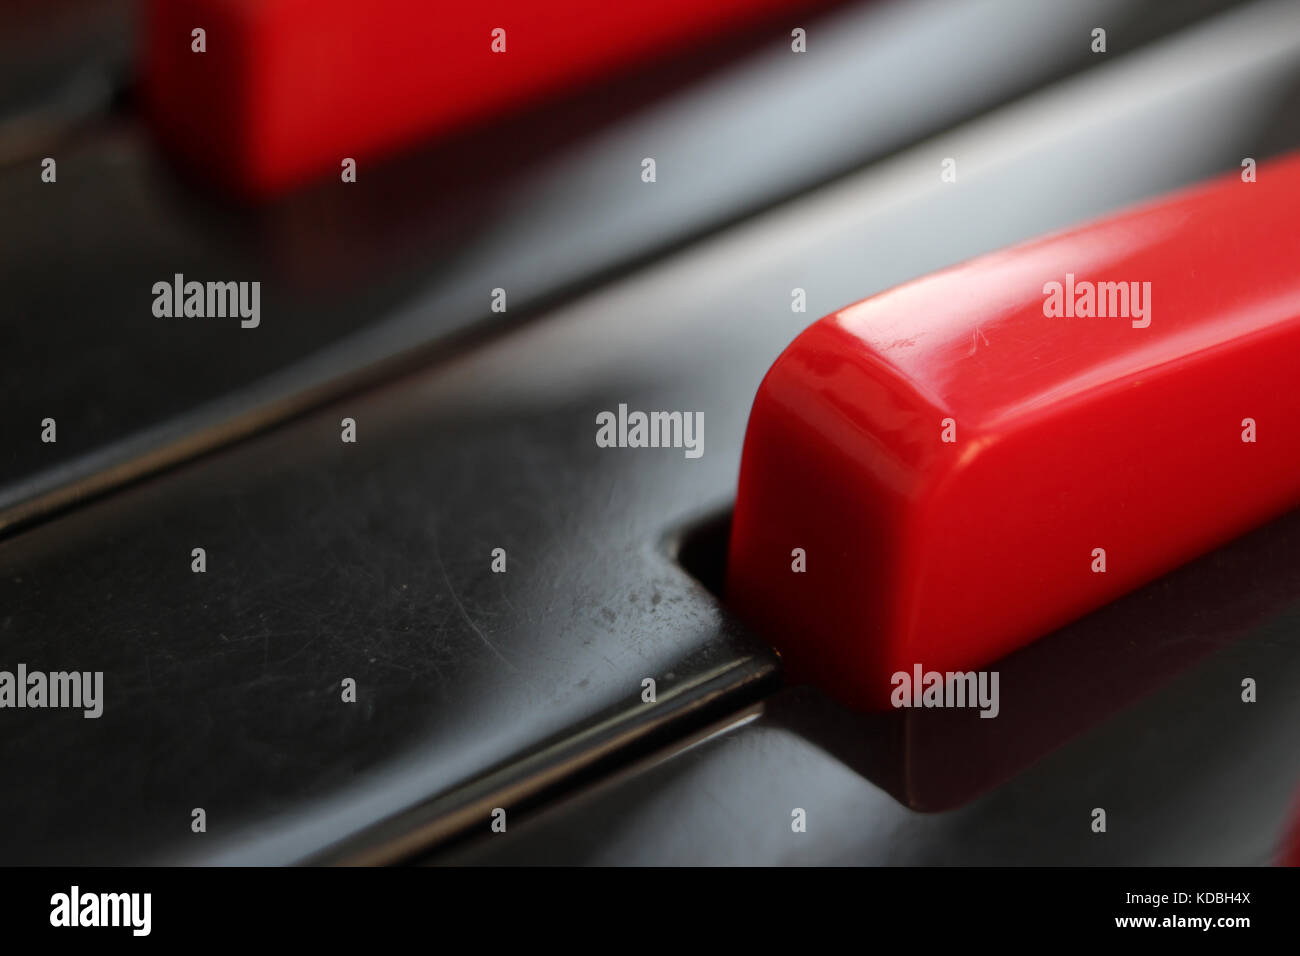 Closeup of black and red keys of melodica keyboard. - Stock Image